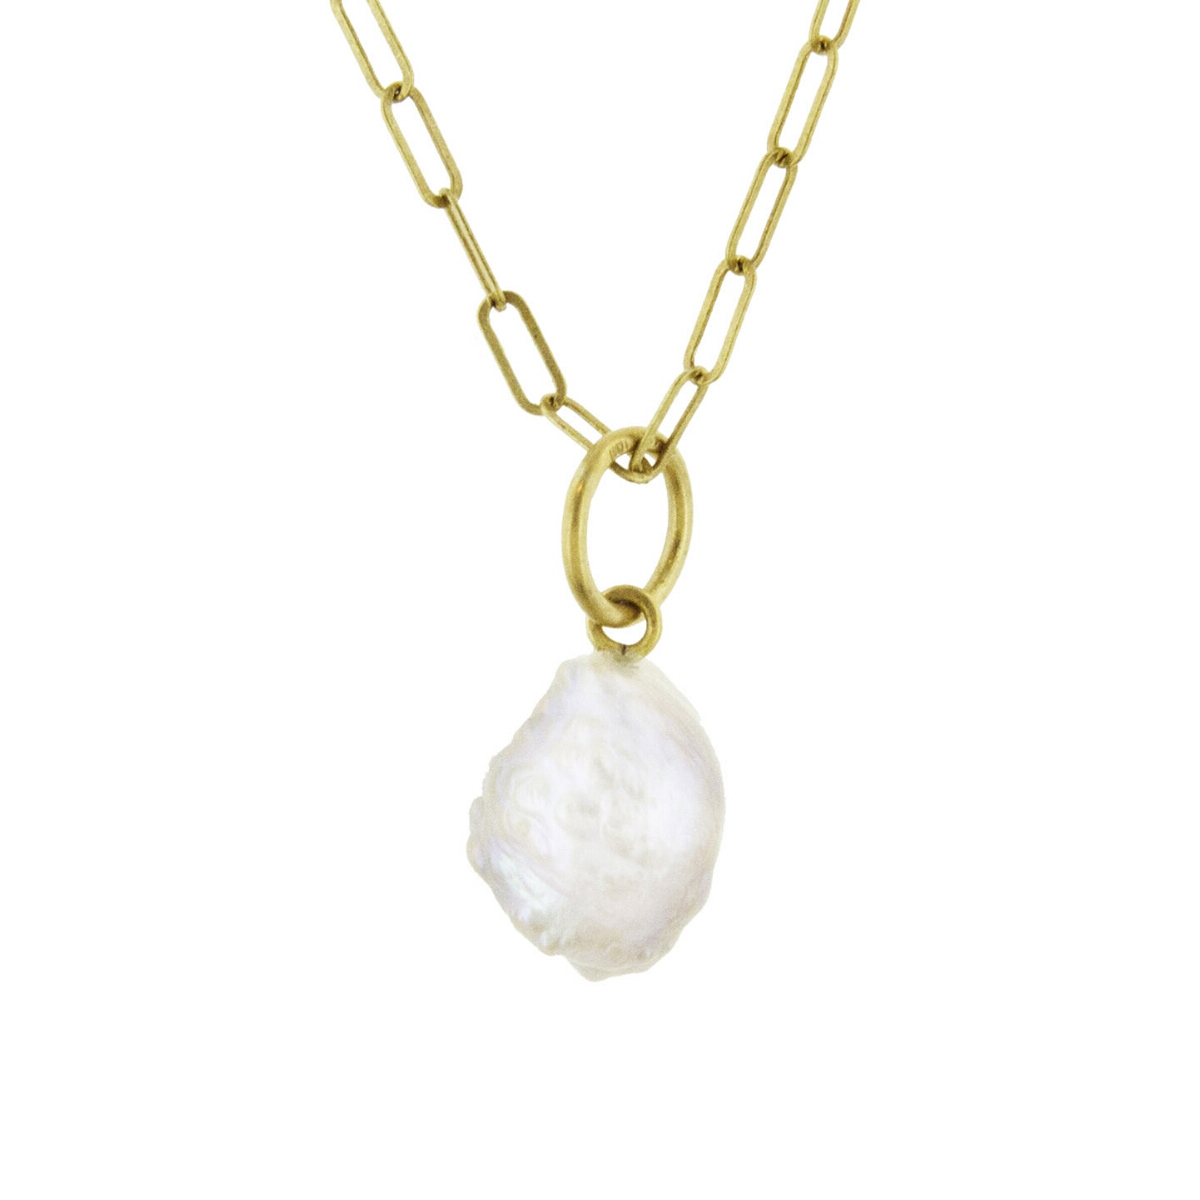 ylang pearl charm gold necklace.jpg